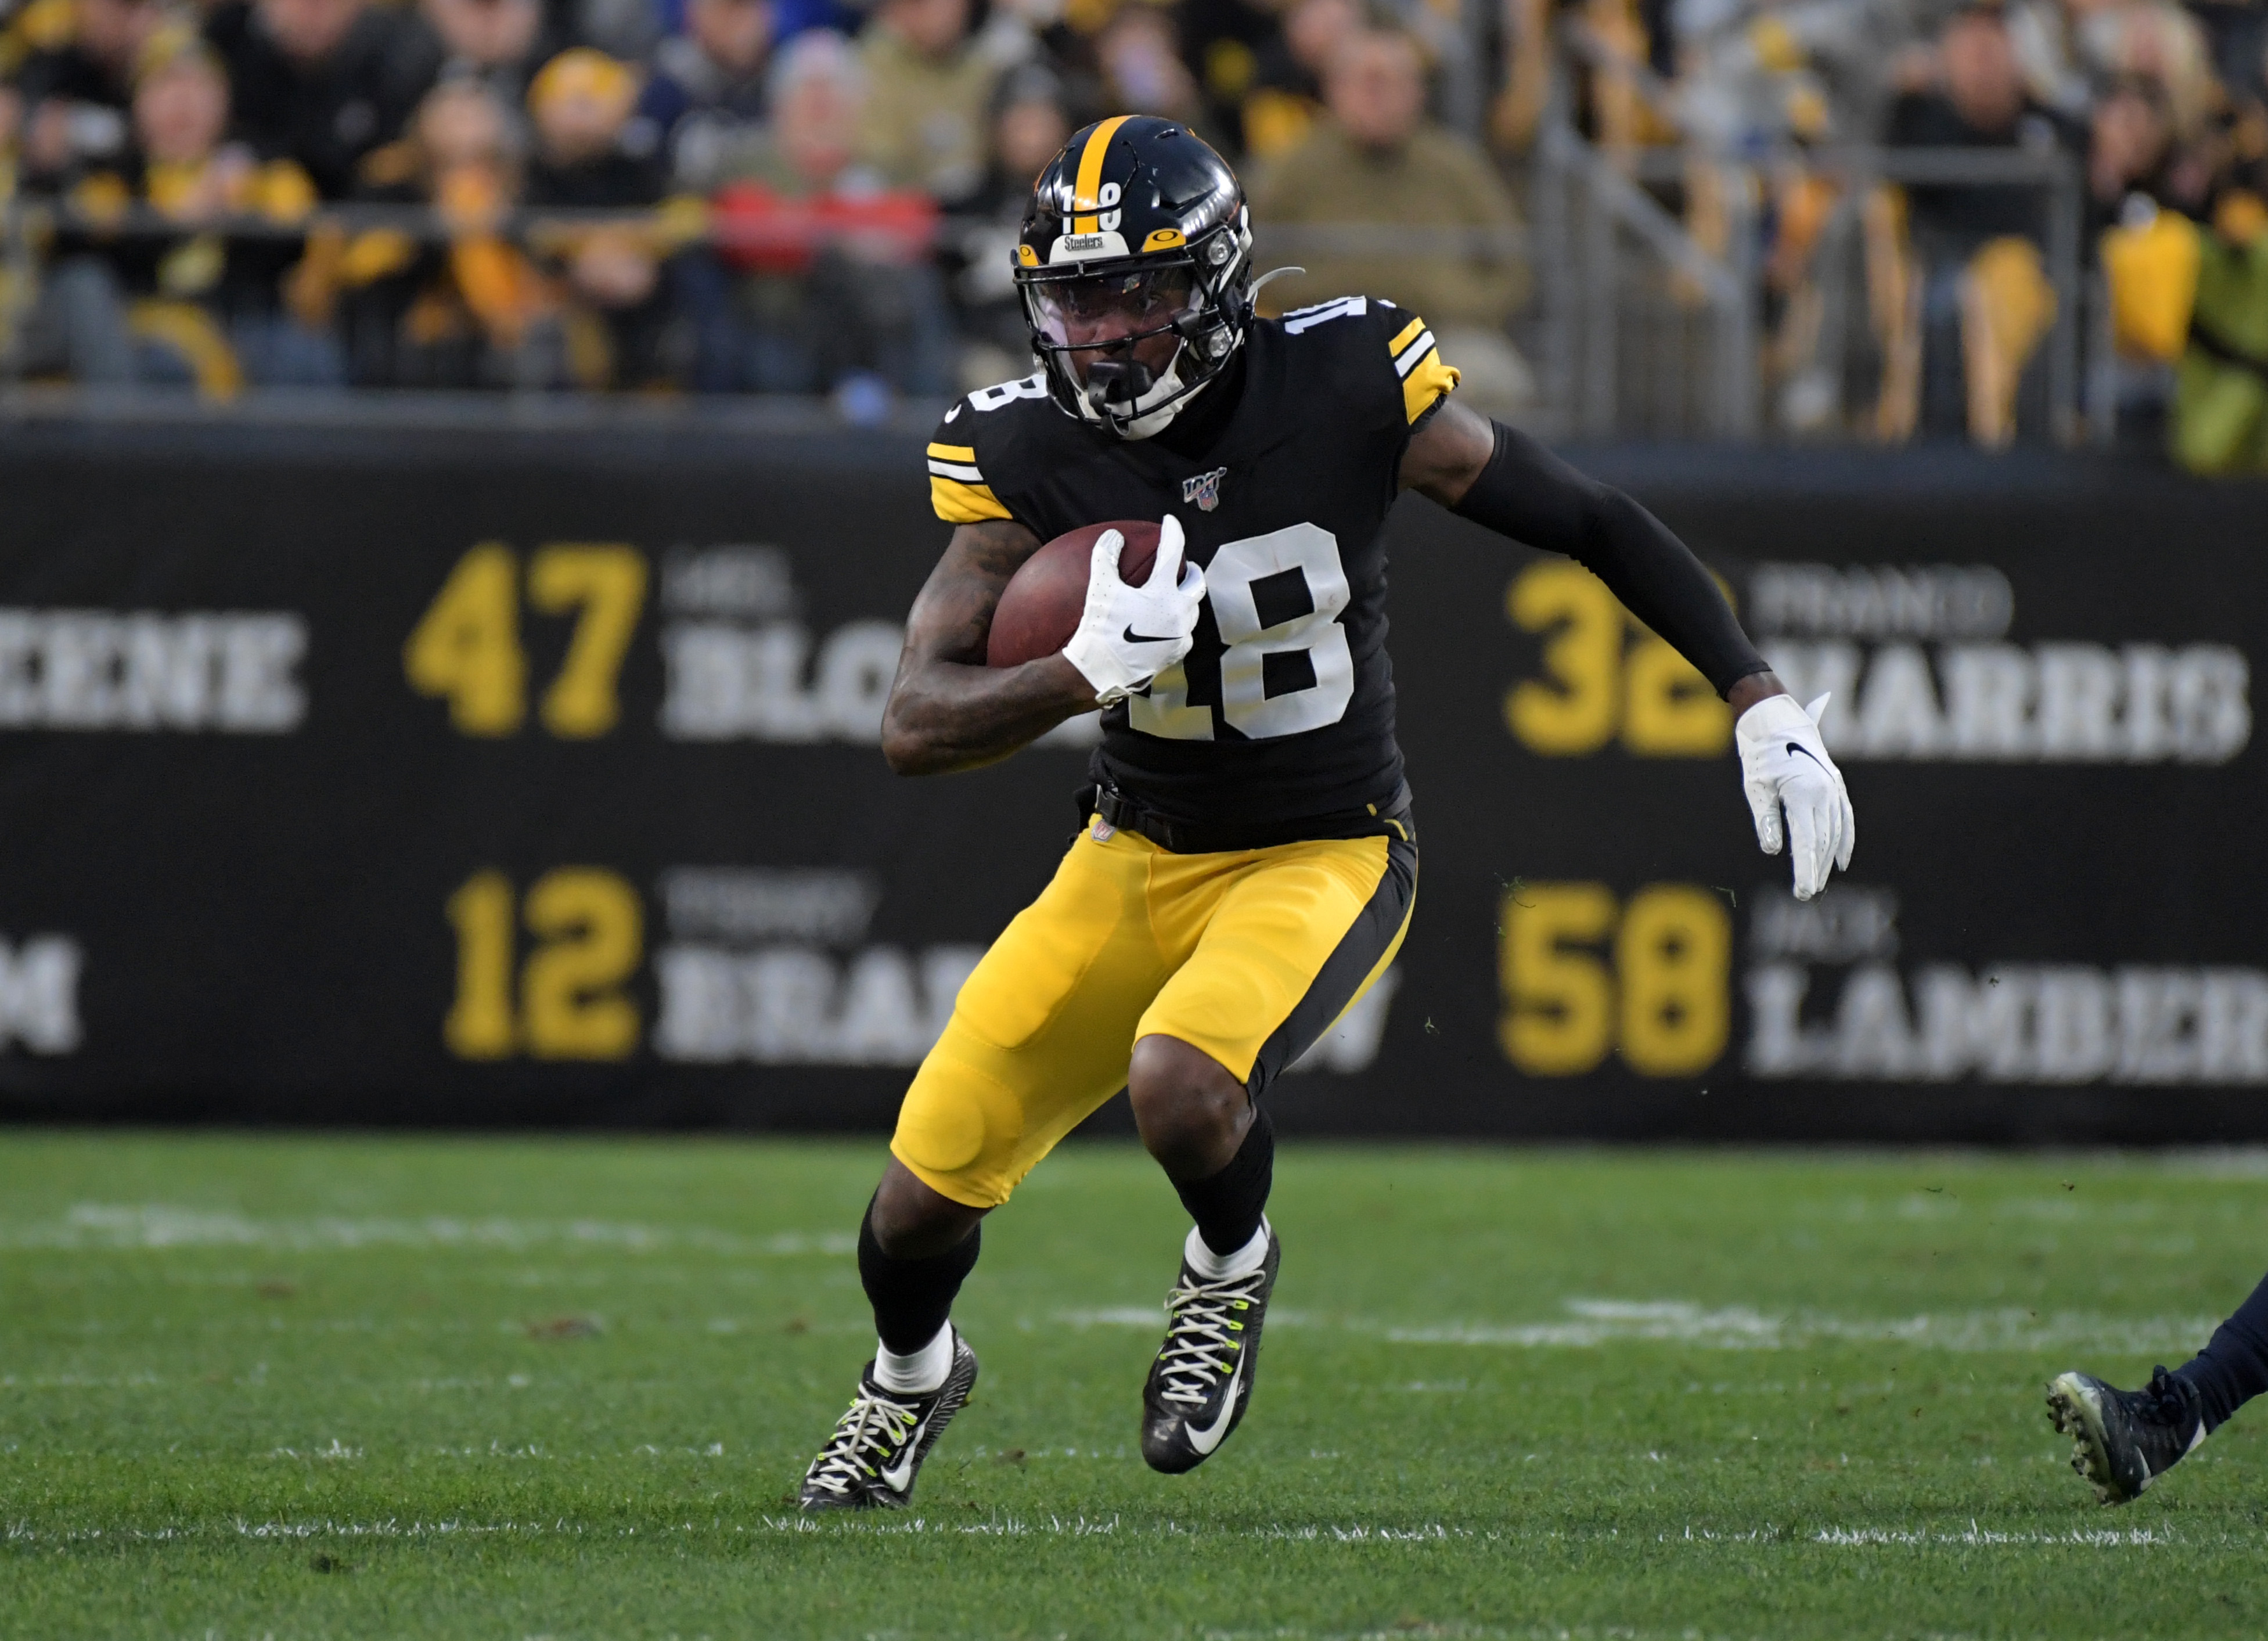 """Mike Tomlin on Diontae Johnson's Struggles: """"He'll Have Gas Left in The Tank For December"""""""